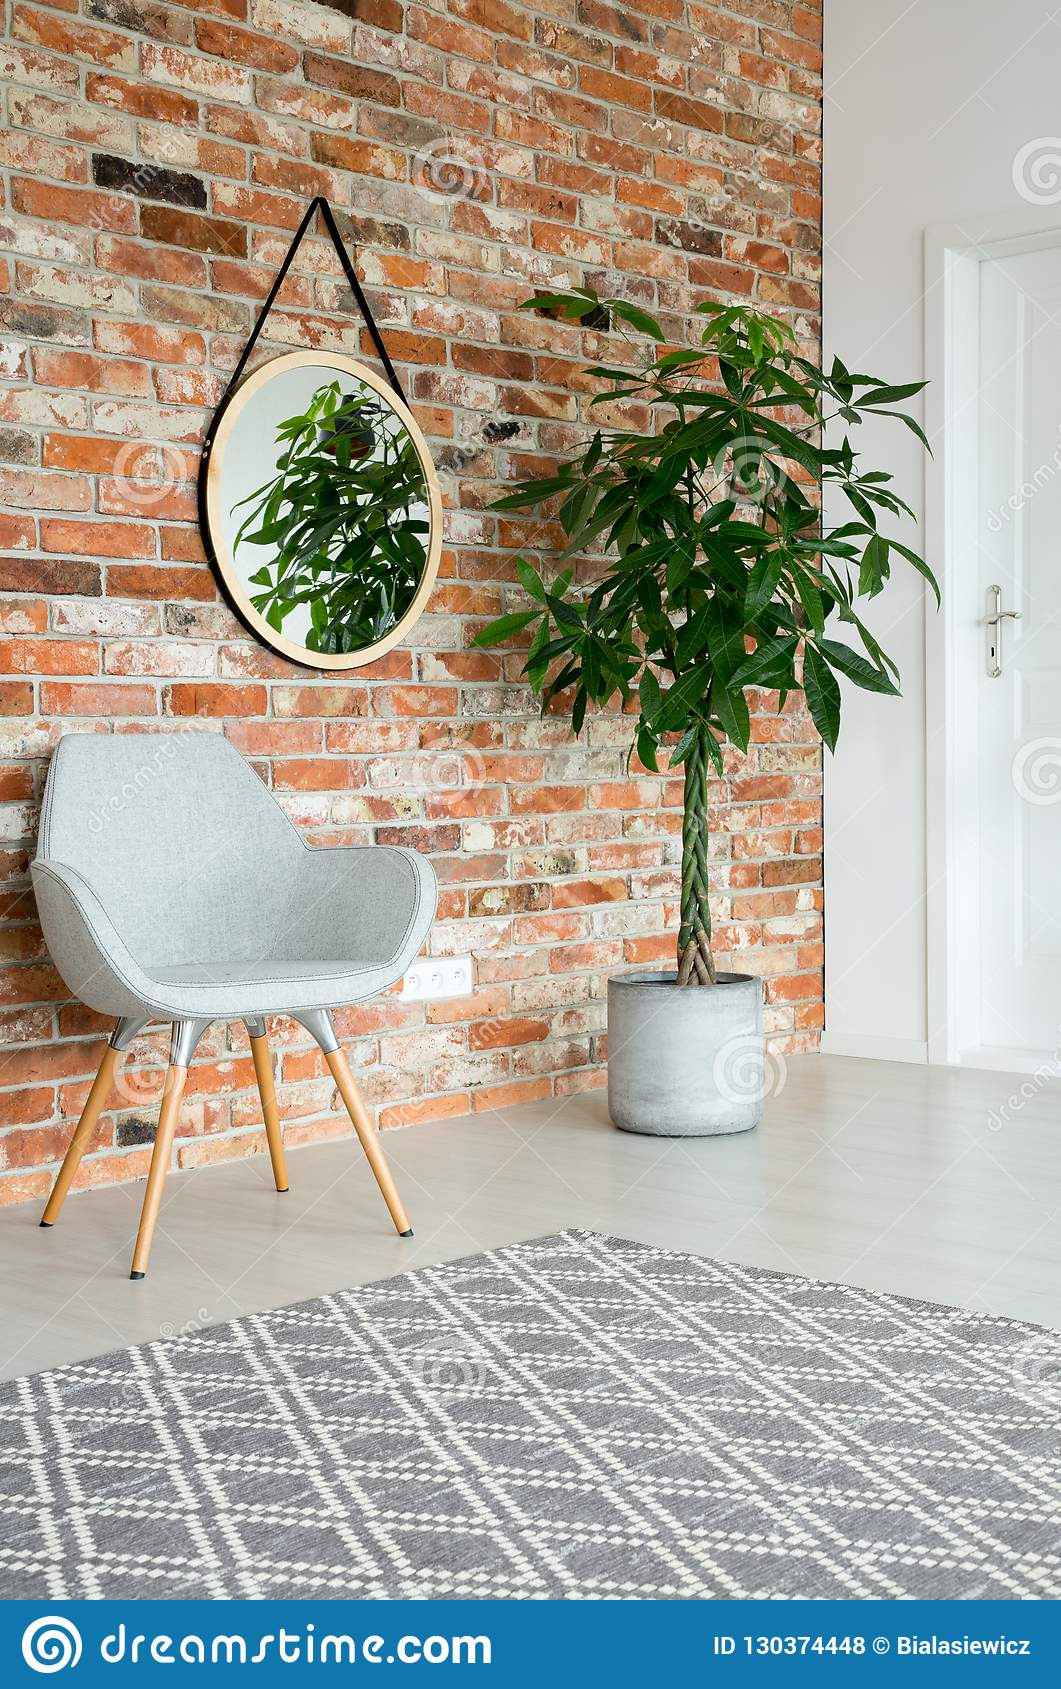 Mirror on the wall of corridor with tall plant in pot, grey stylish chair and brick wall